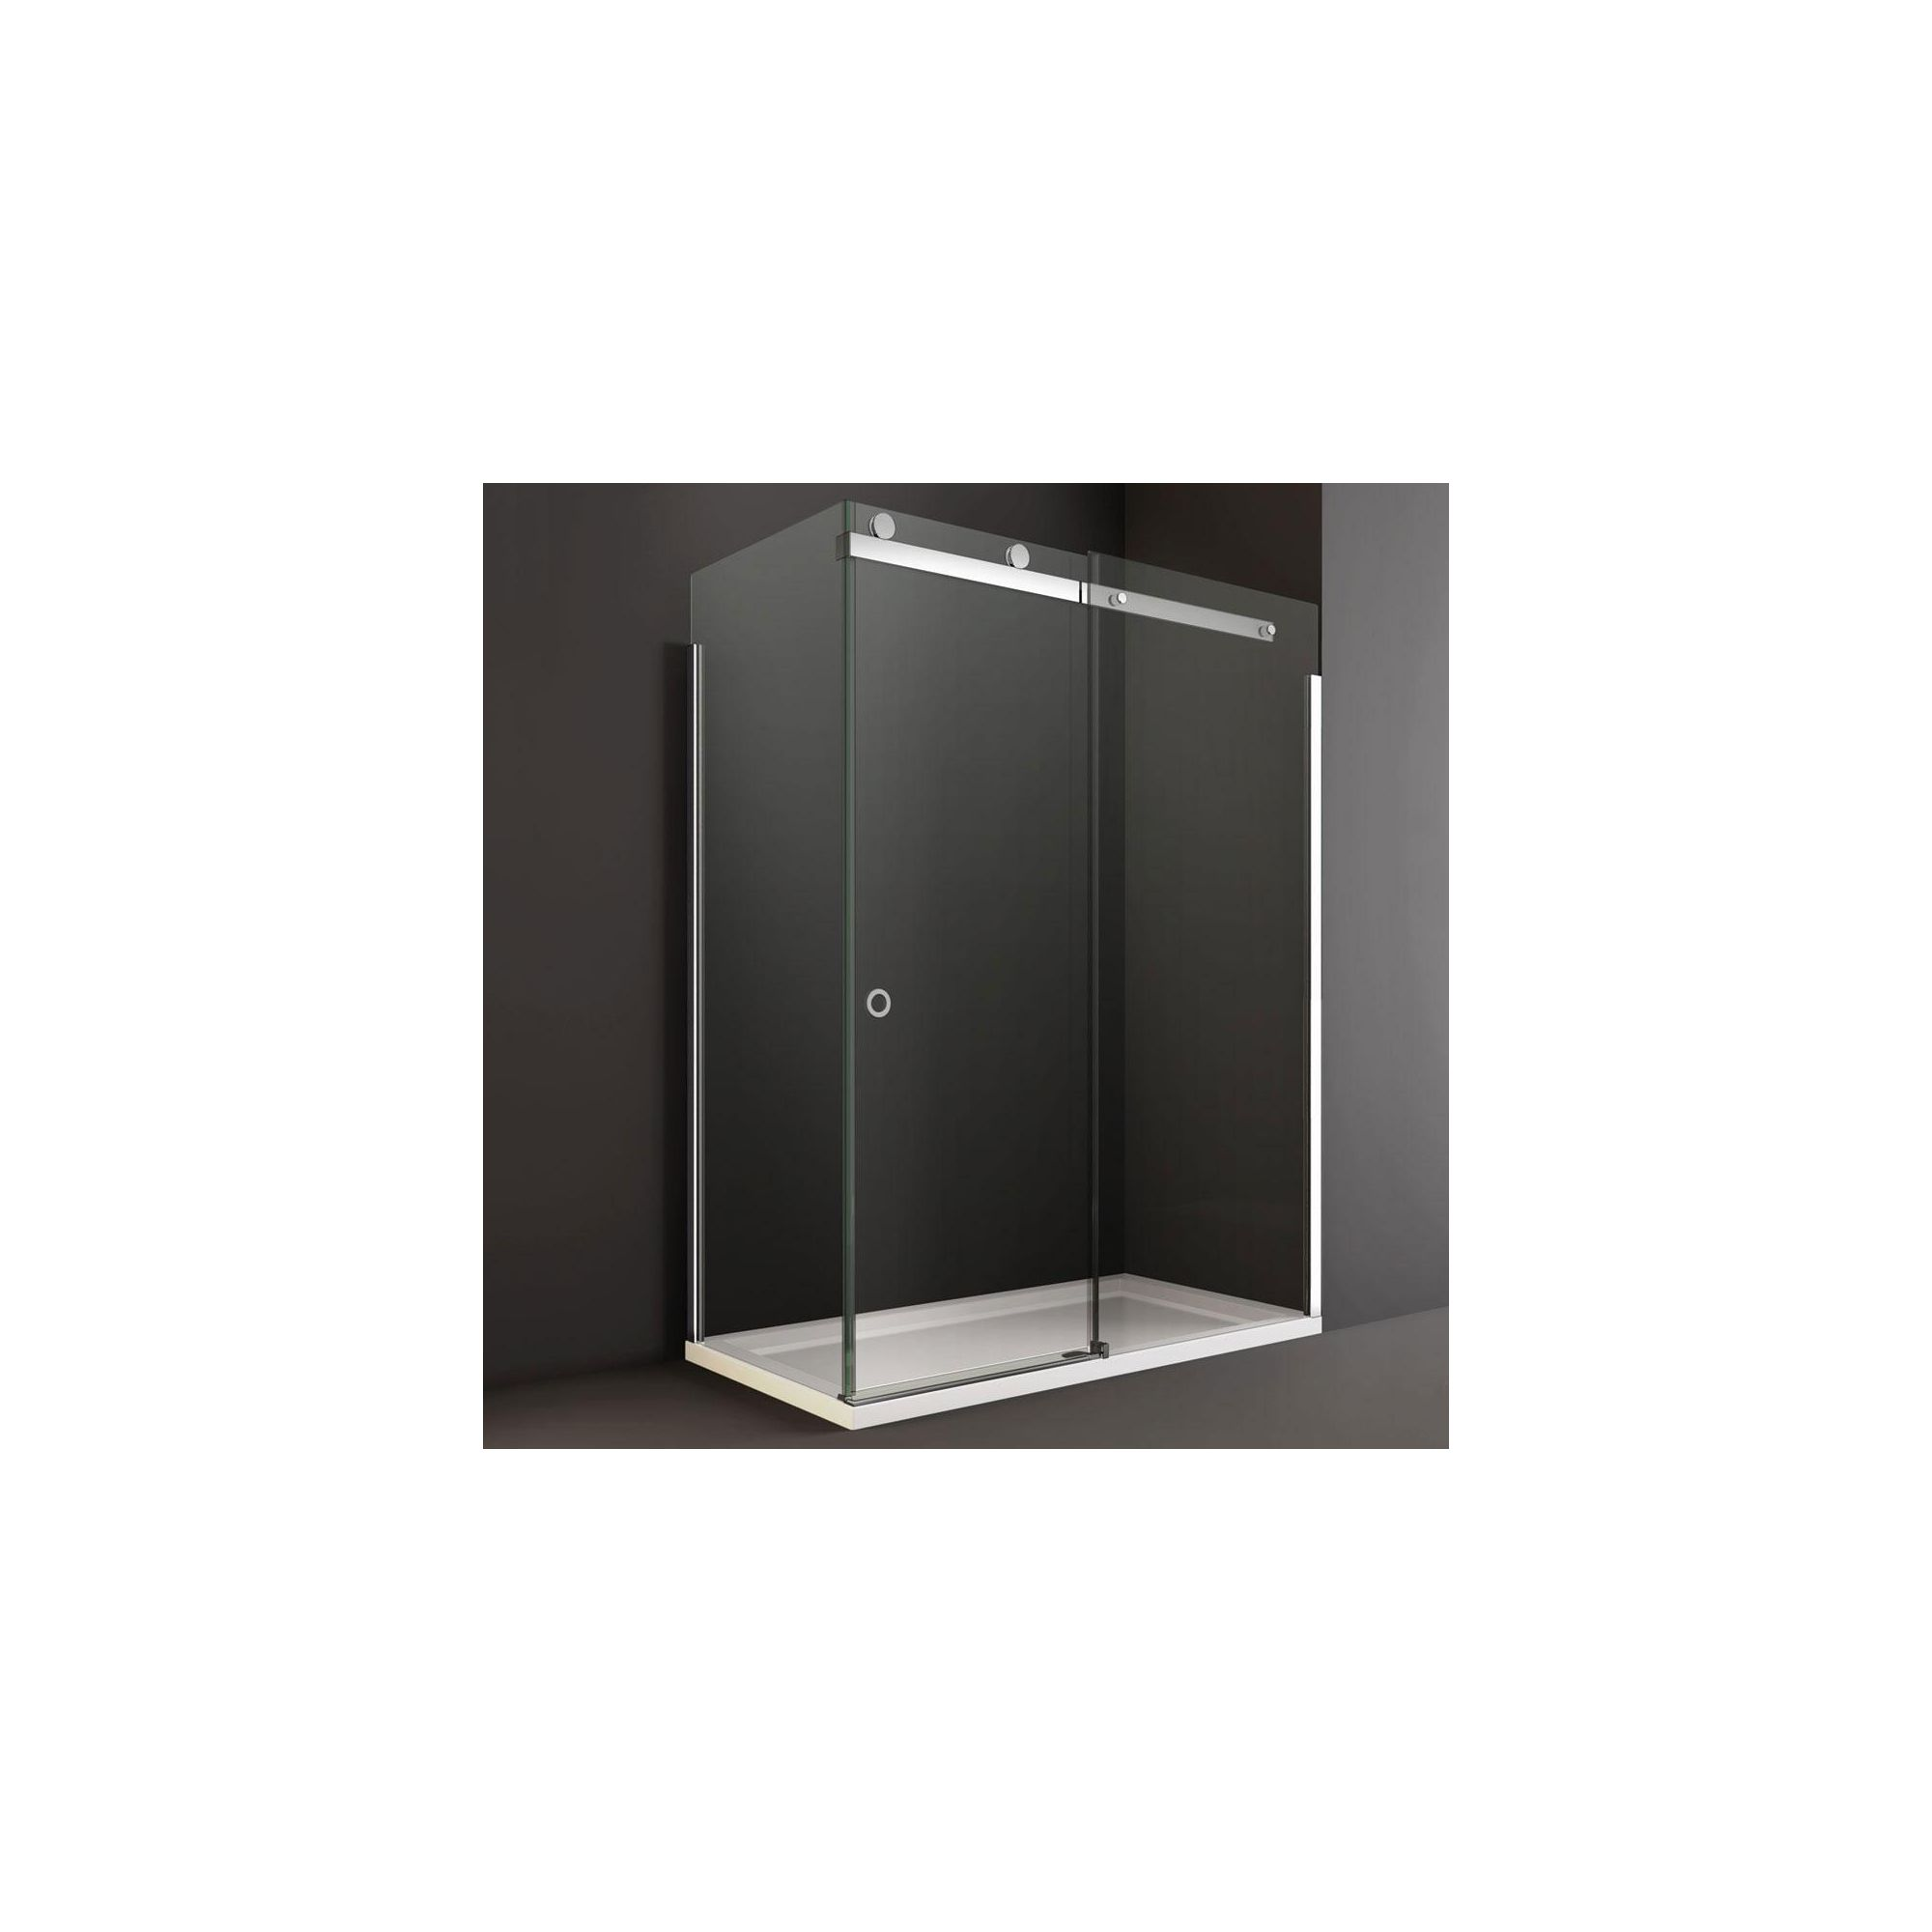 Merlyn Series 10 Sliding Shower Door, 1100mm Wide, 10mm Clear Glass, Right Handed at Tescos Direct